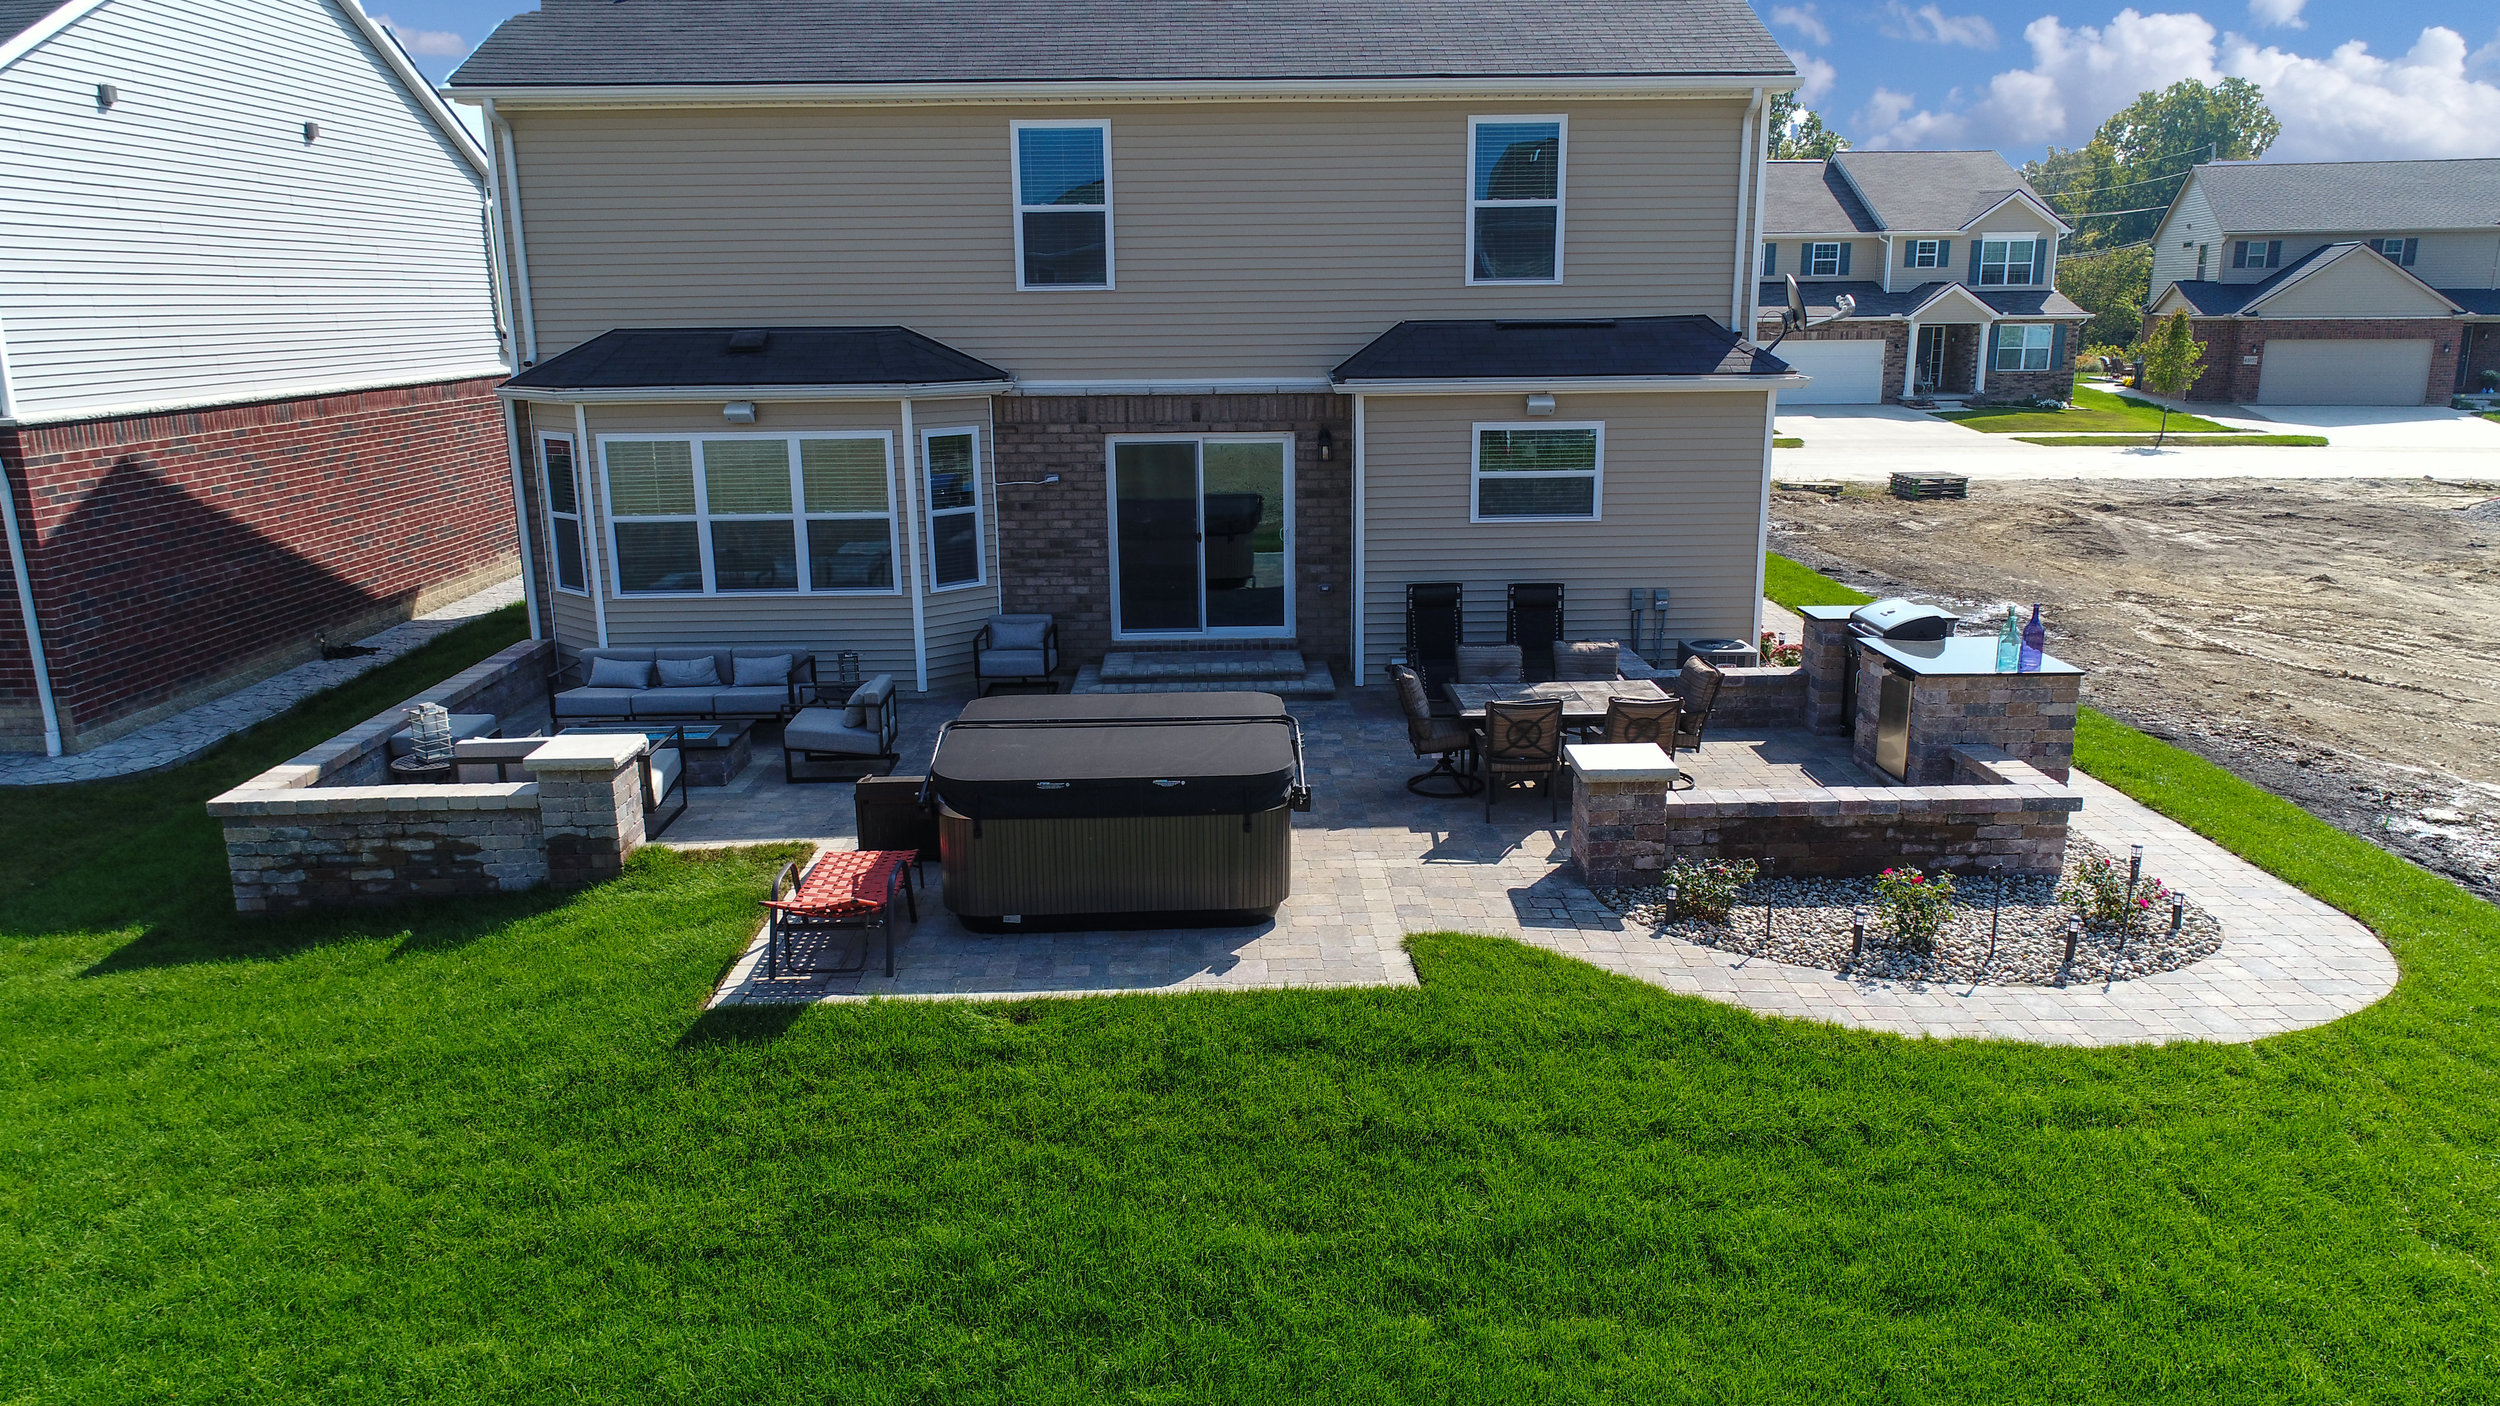 Copy of Shelby Township, Michigan top quality patio pavers